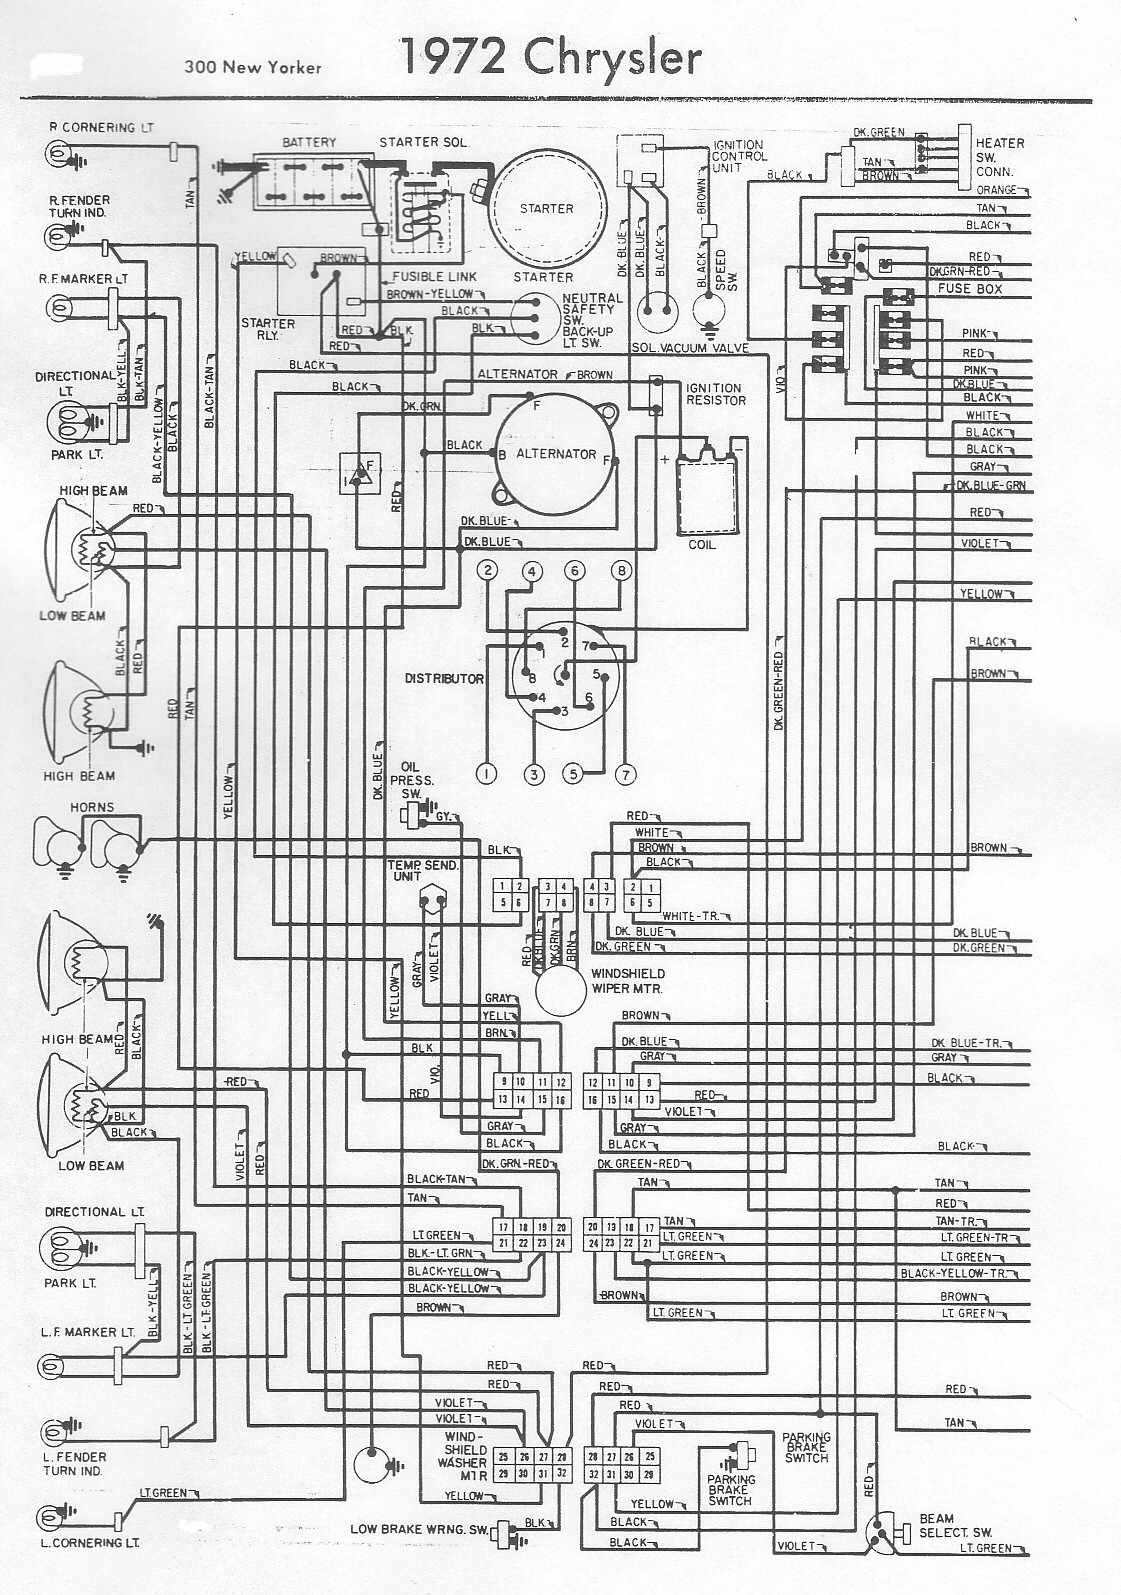 small resolution of automotive diagrams archives page 275 of 301 wiring wiring diagram automotive diagrams archives page 275 of 301 wiring